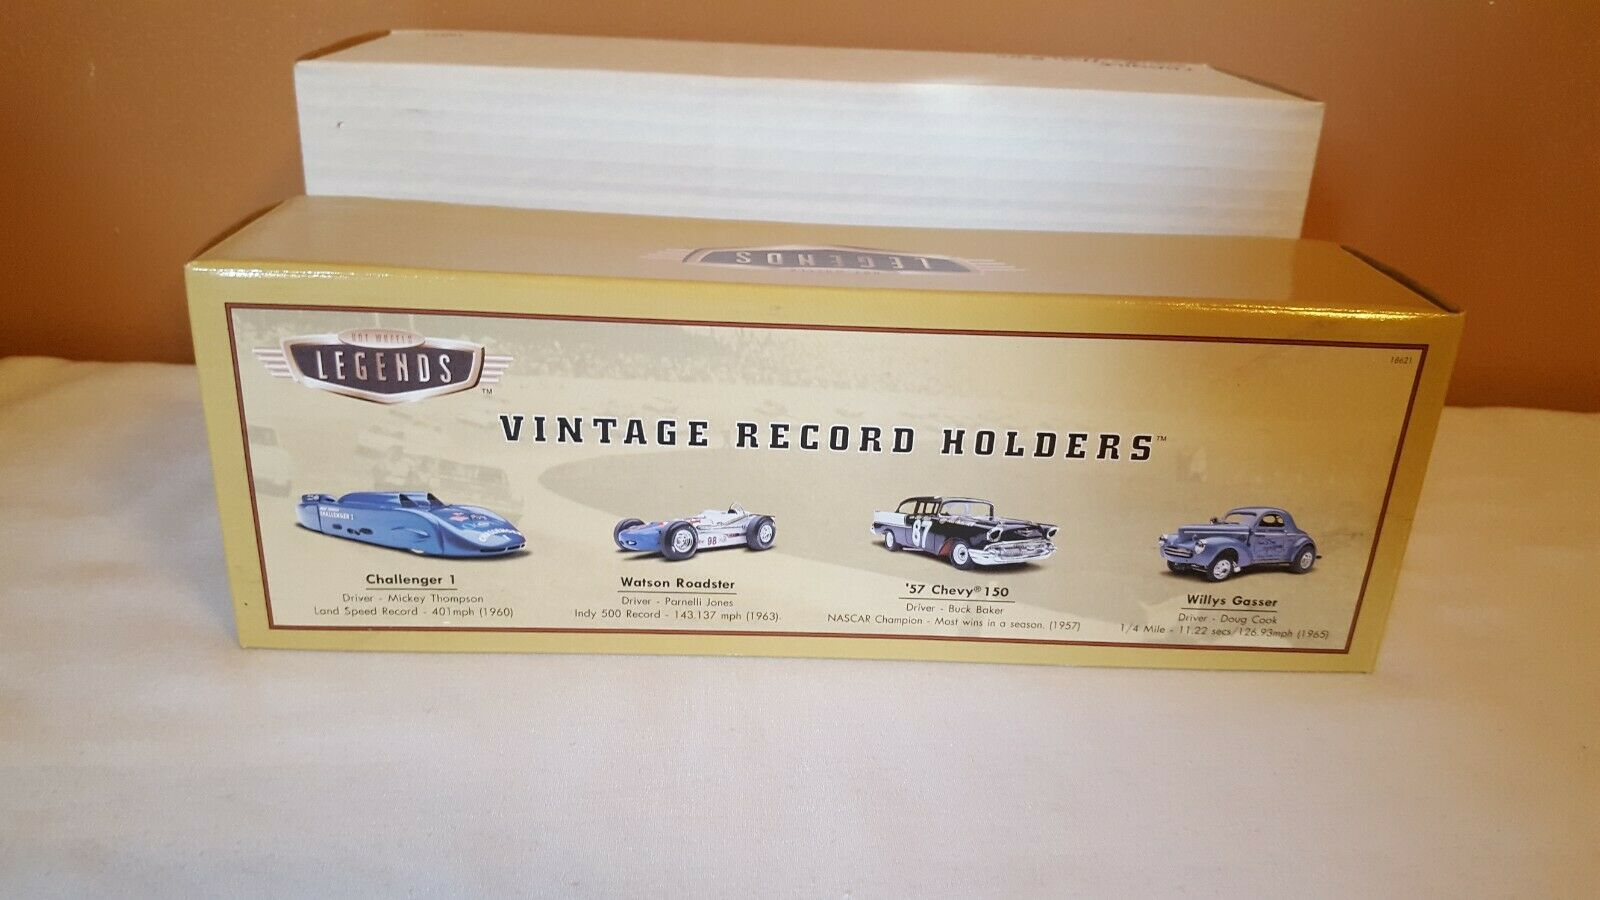 HOT WHEELS LEGENDS VINTAGE RECORD HOLDERS 4 CAR SET WILLYS 57 CHEVY ROADSTER NEW